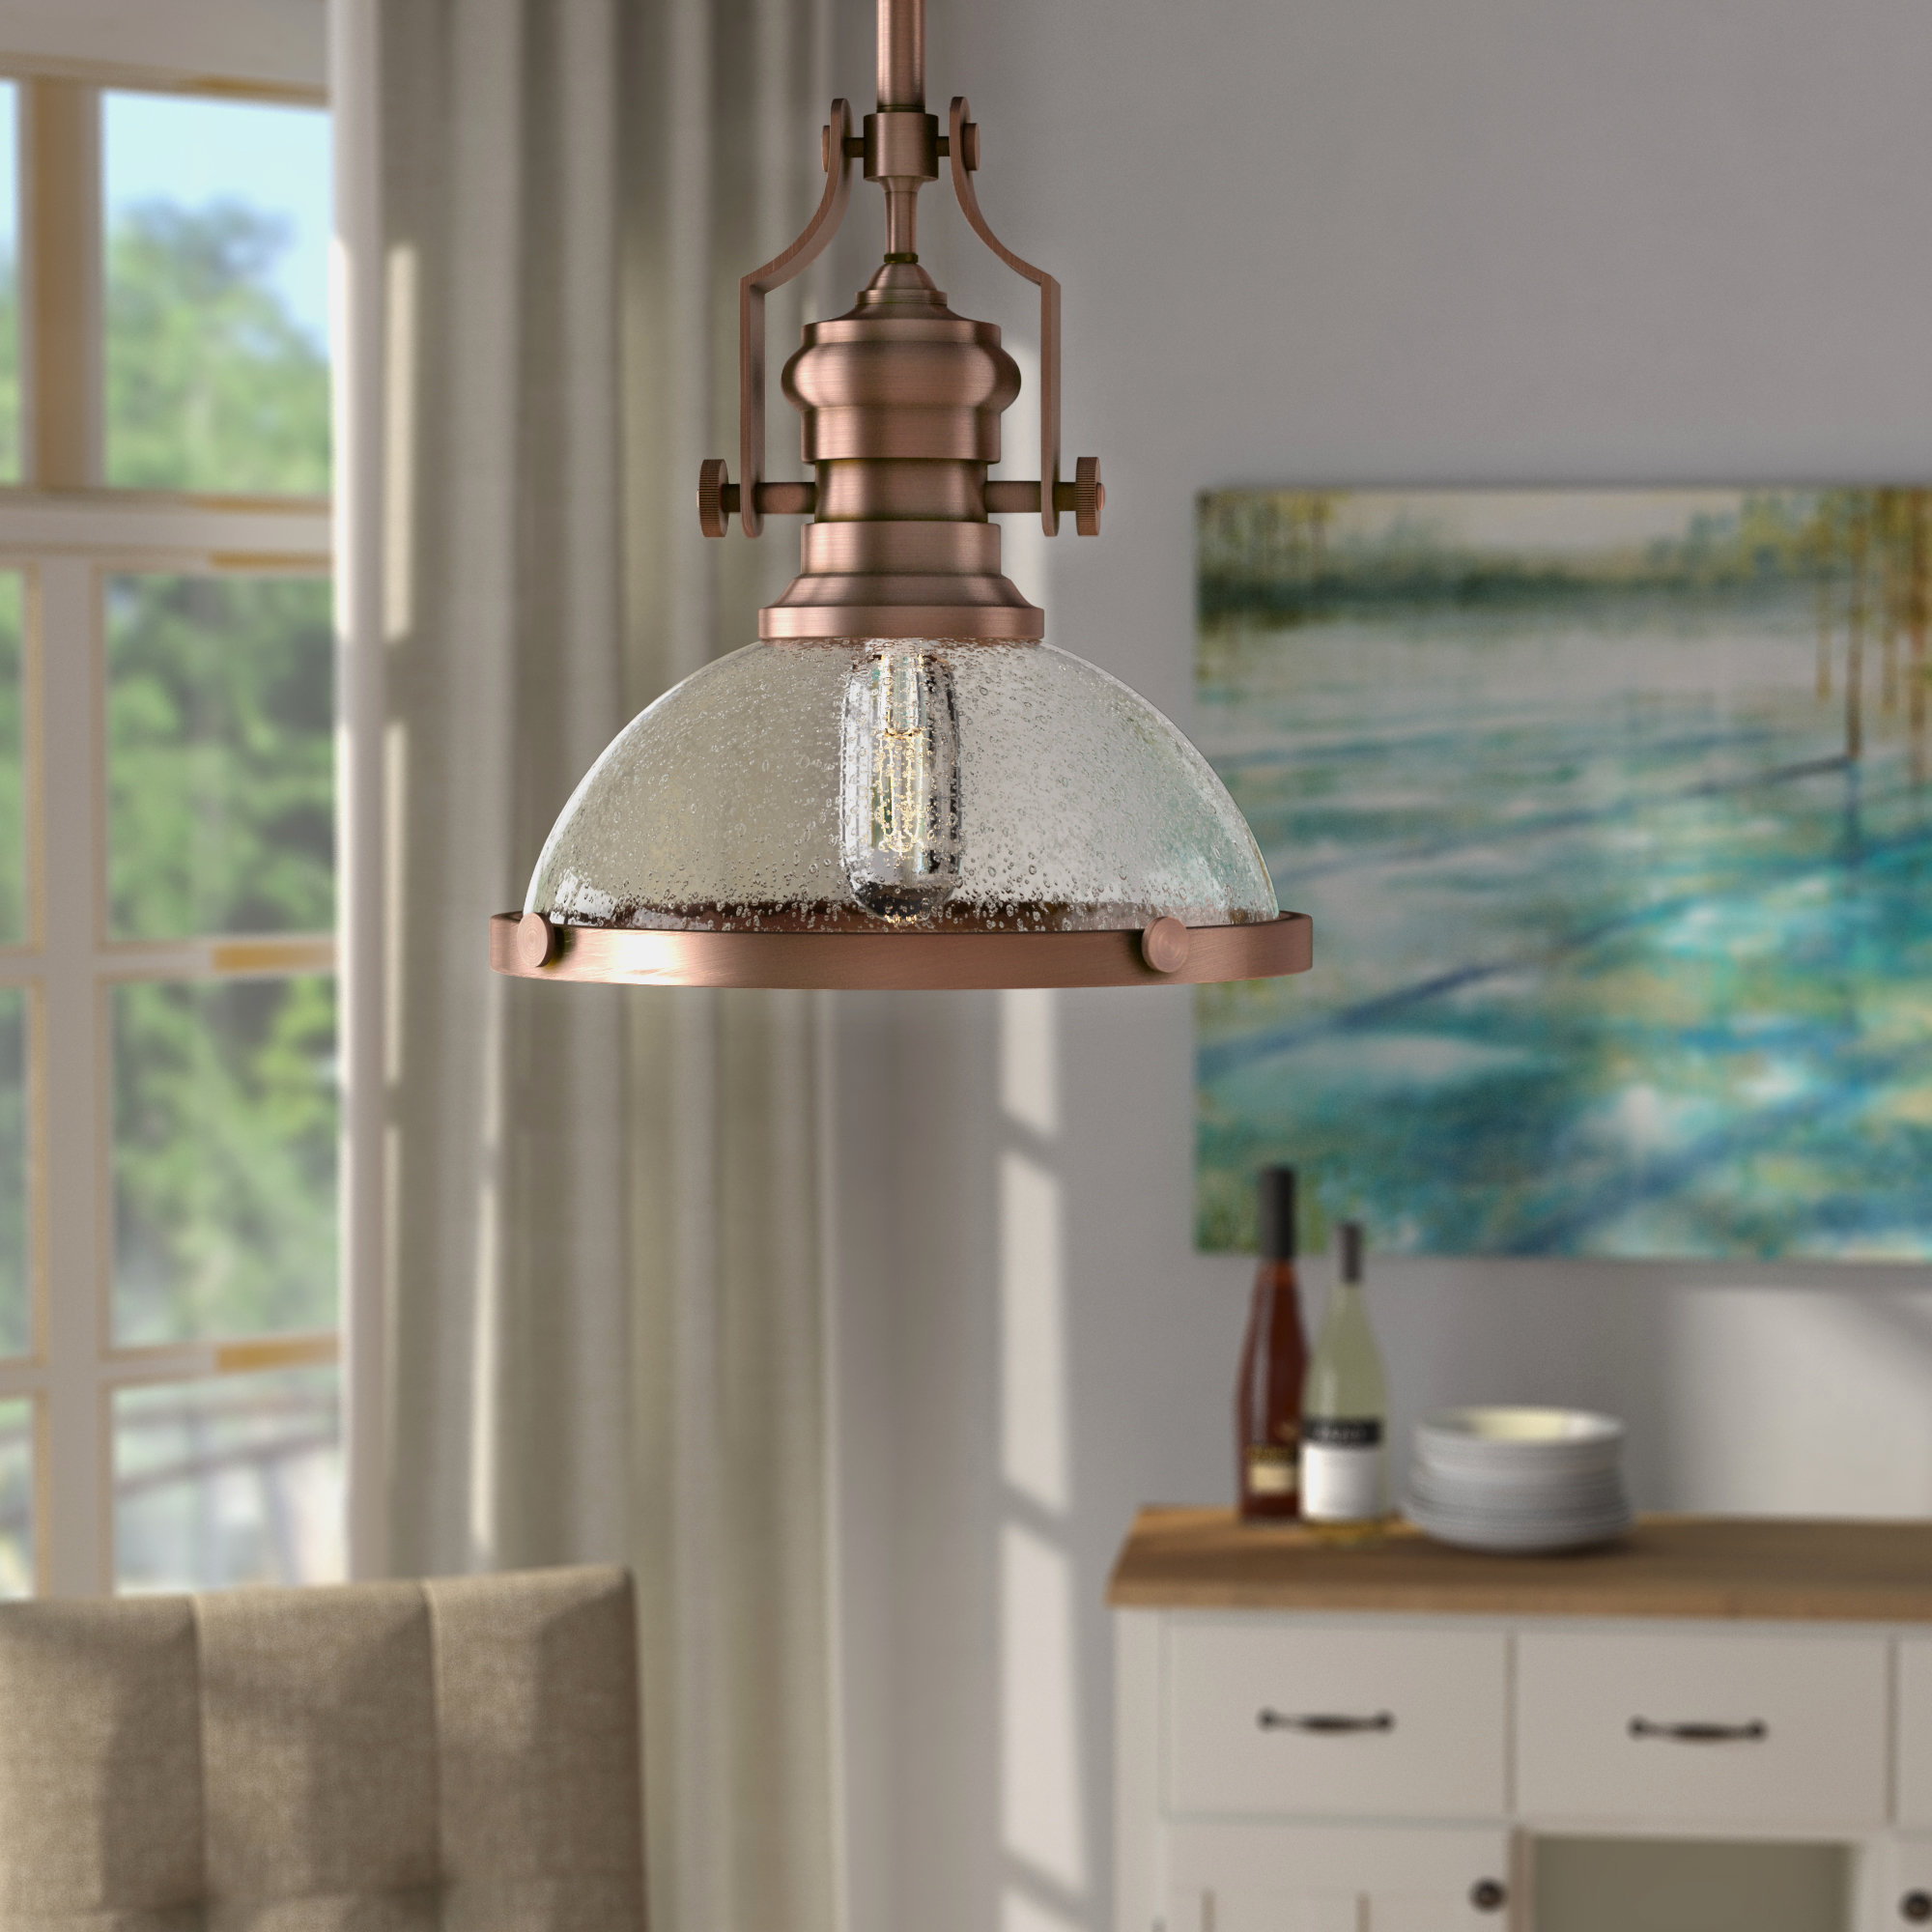 Newest Proctor 1 Light Bowl Pendants Regarding Breakwater Bay Priston 1 Light Single Dome Pendant & Reviews (View 7 of 20)